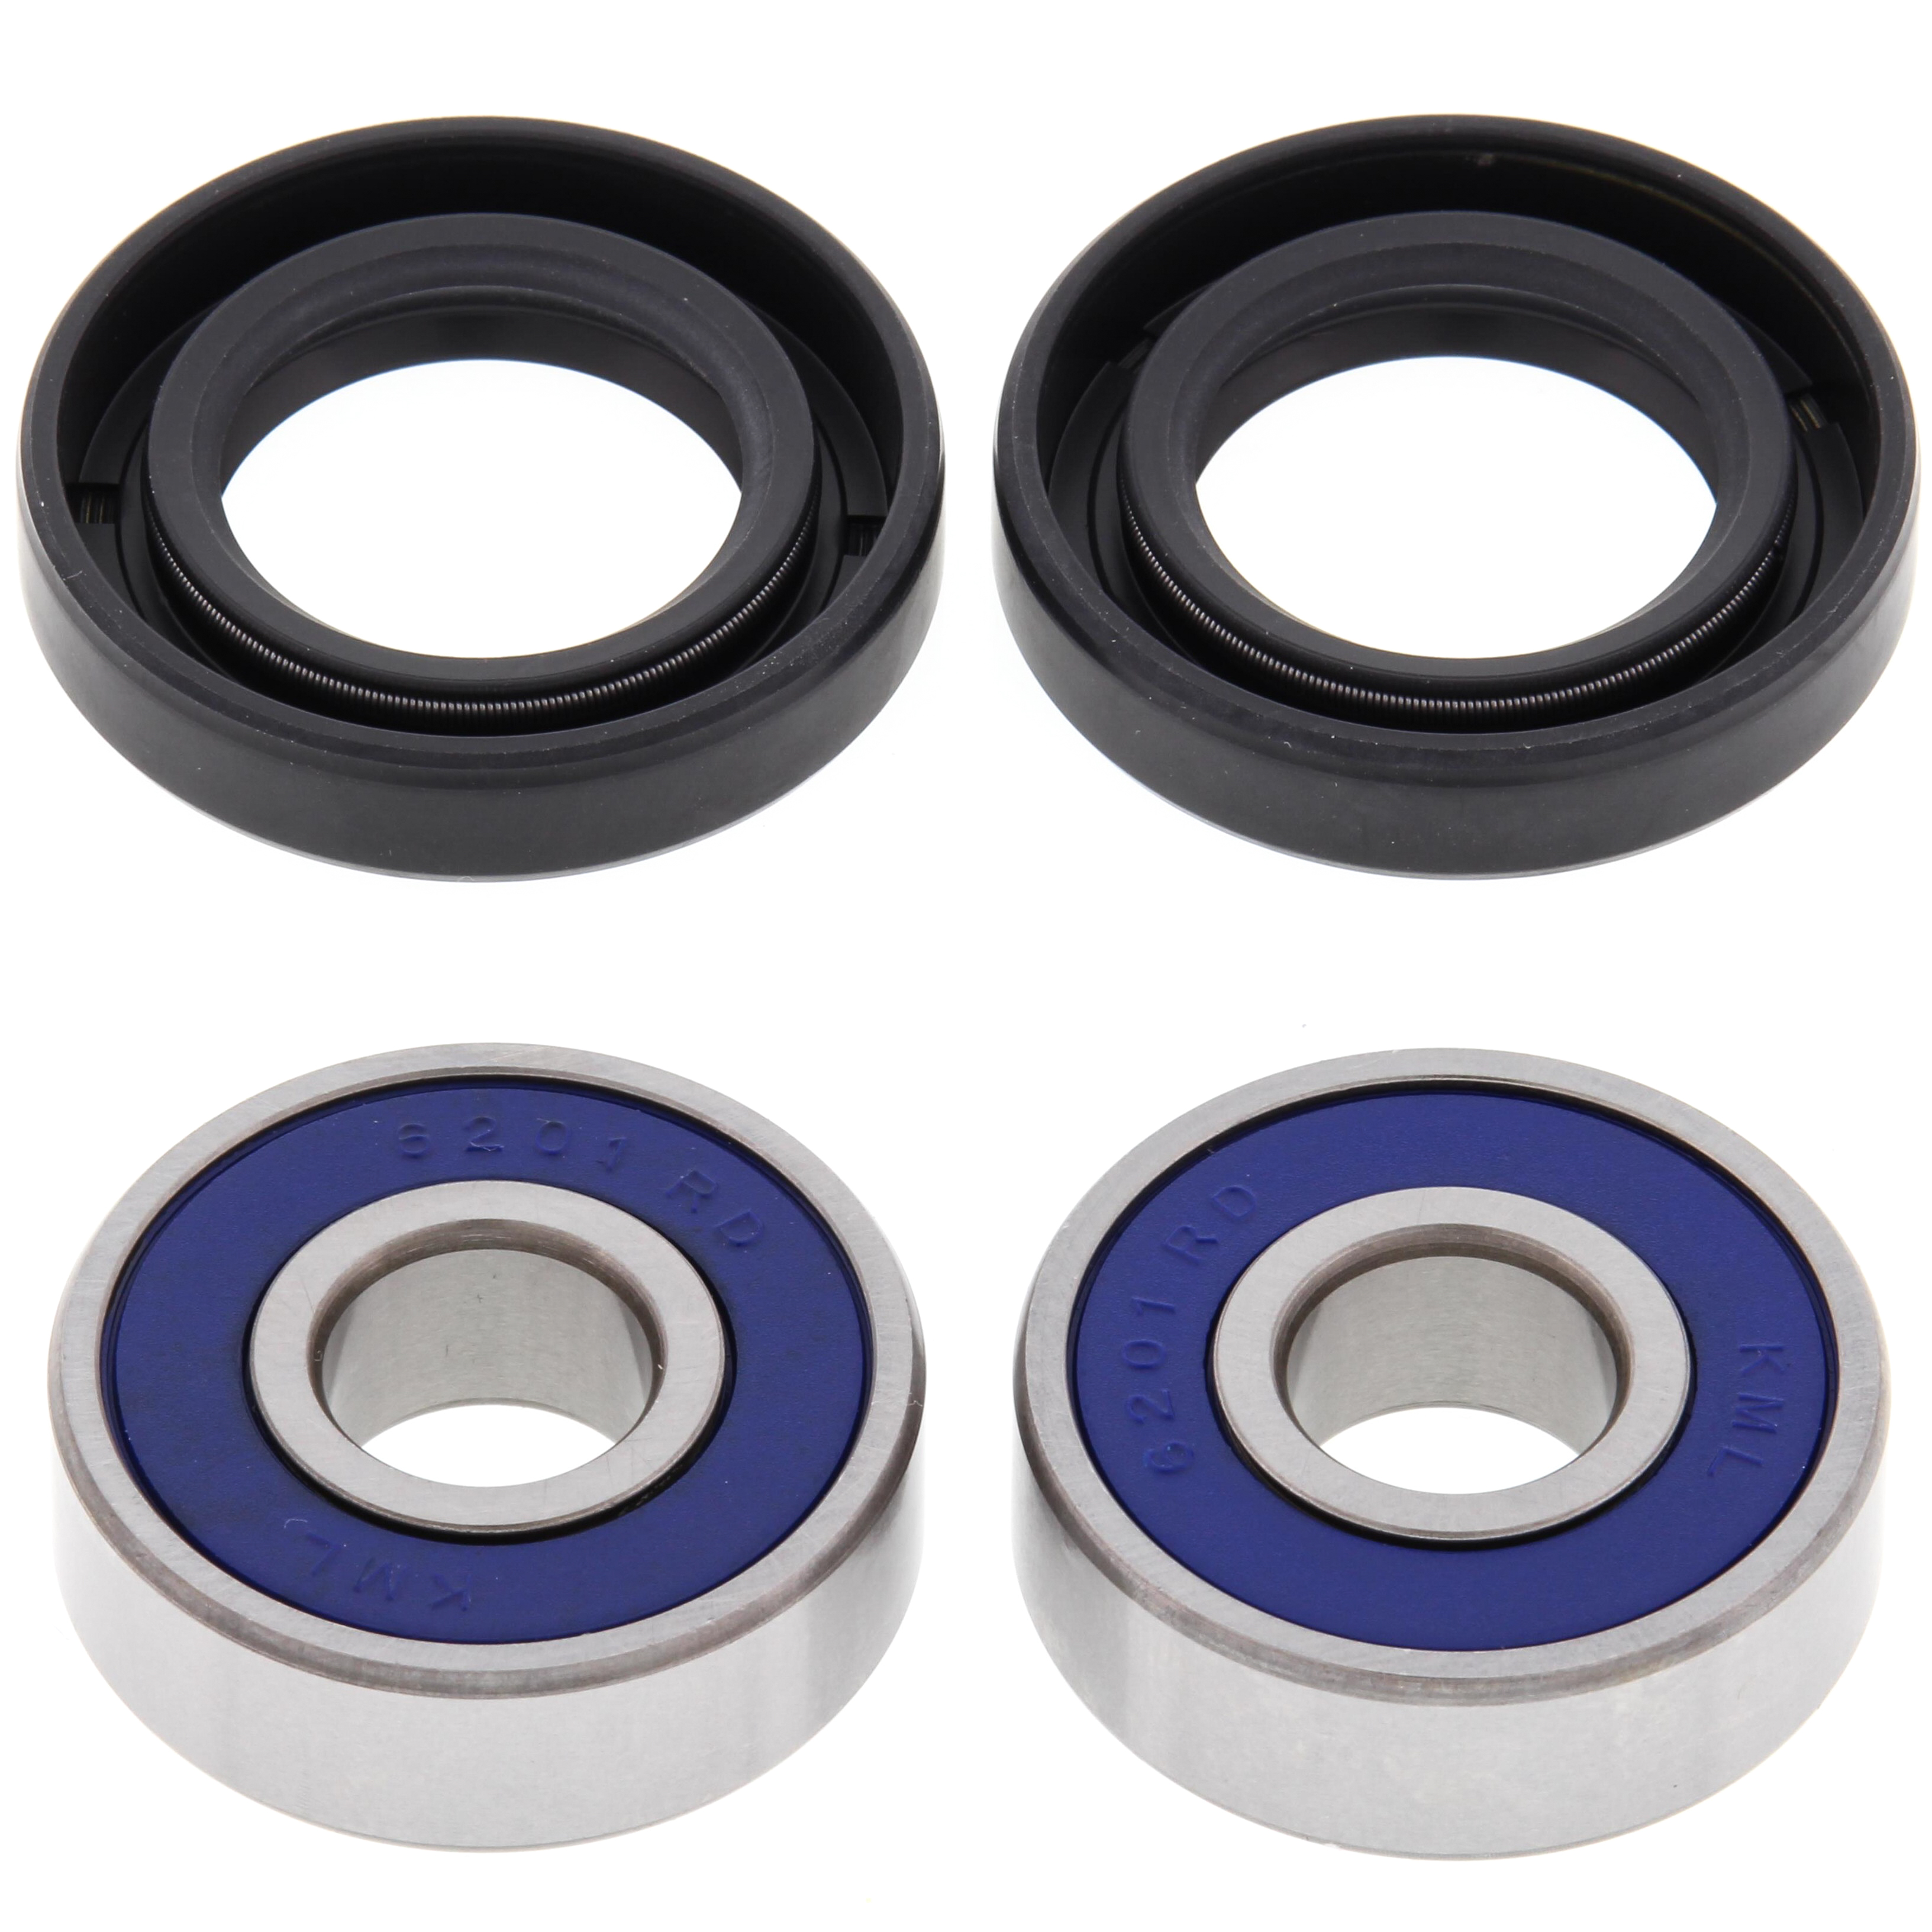 New All Balls Front Wheel Bearing Kit 25-1172 for Suzuki RM 80 1990 1991 1992 1993 1994 1995 1996 1997 1998 1999 2000 2001 90 91 92 93 94 95 96 97 98 99 00 01, RM85 2017 17